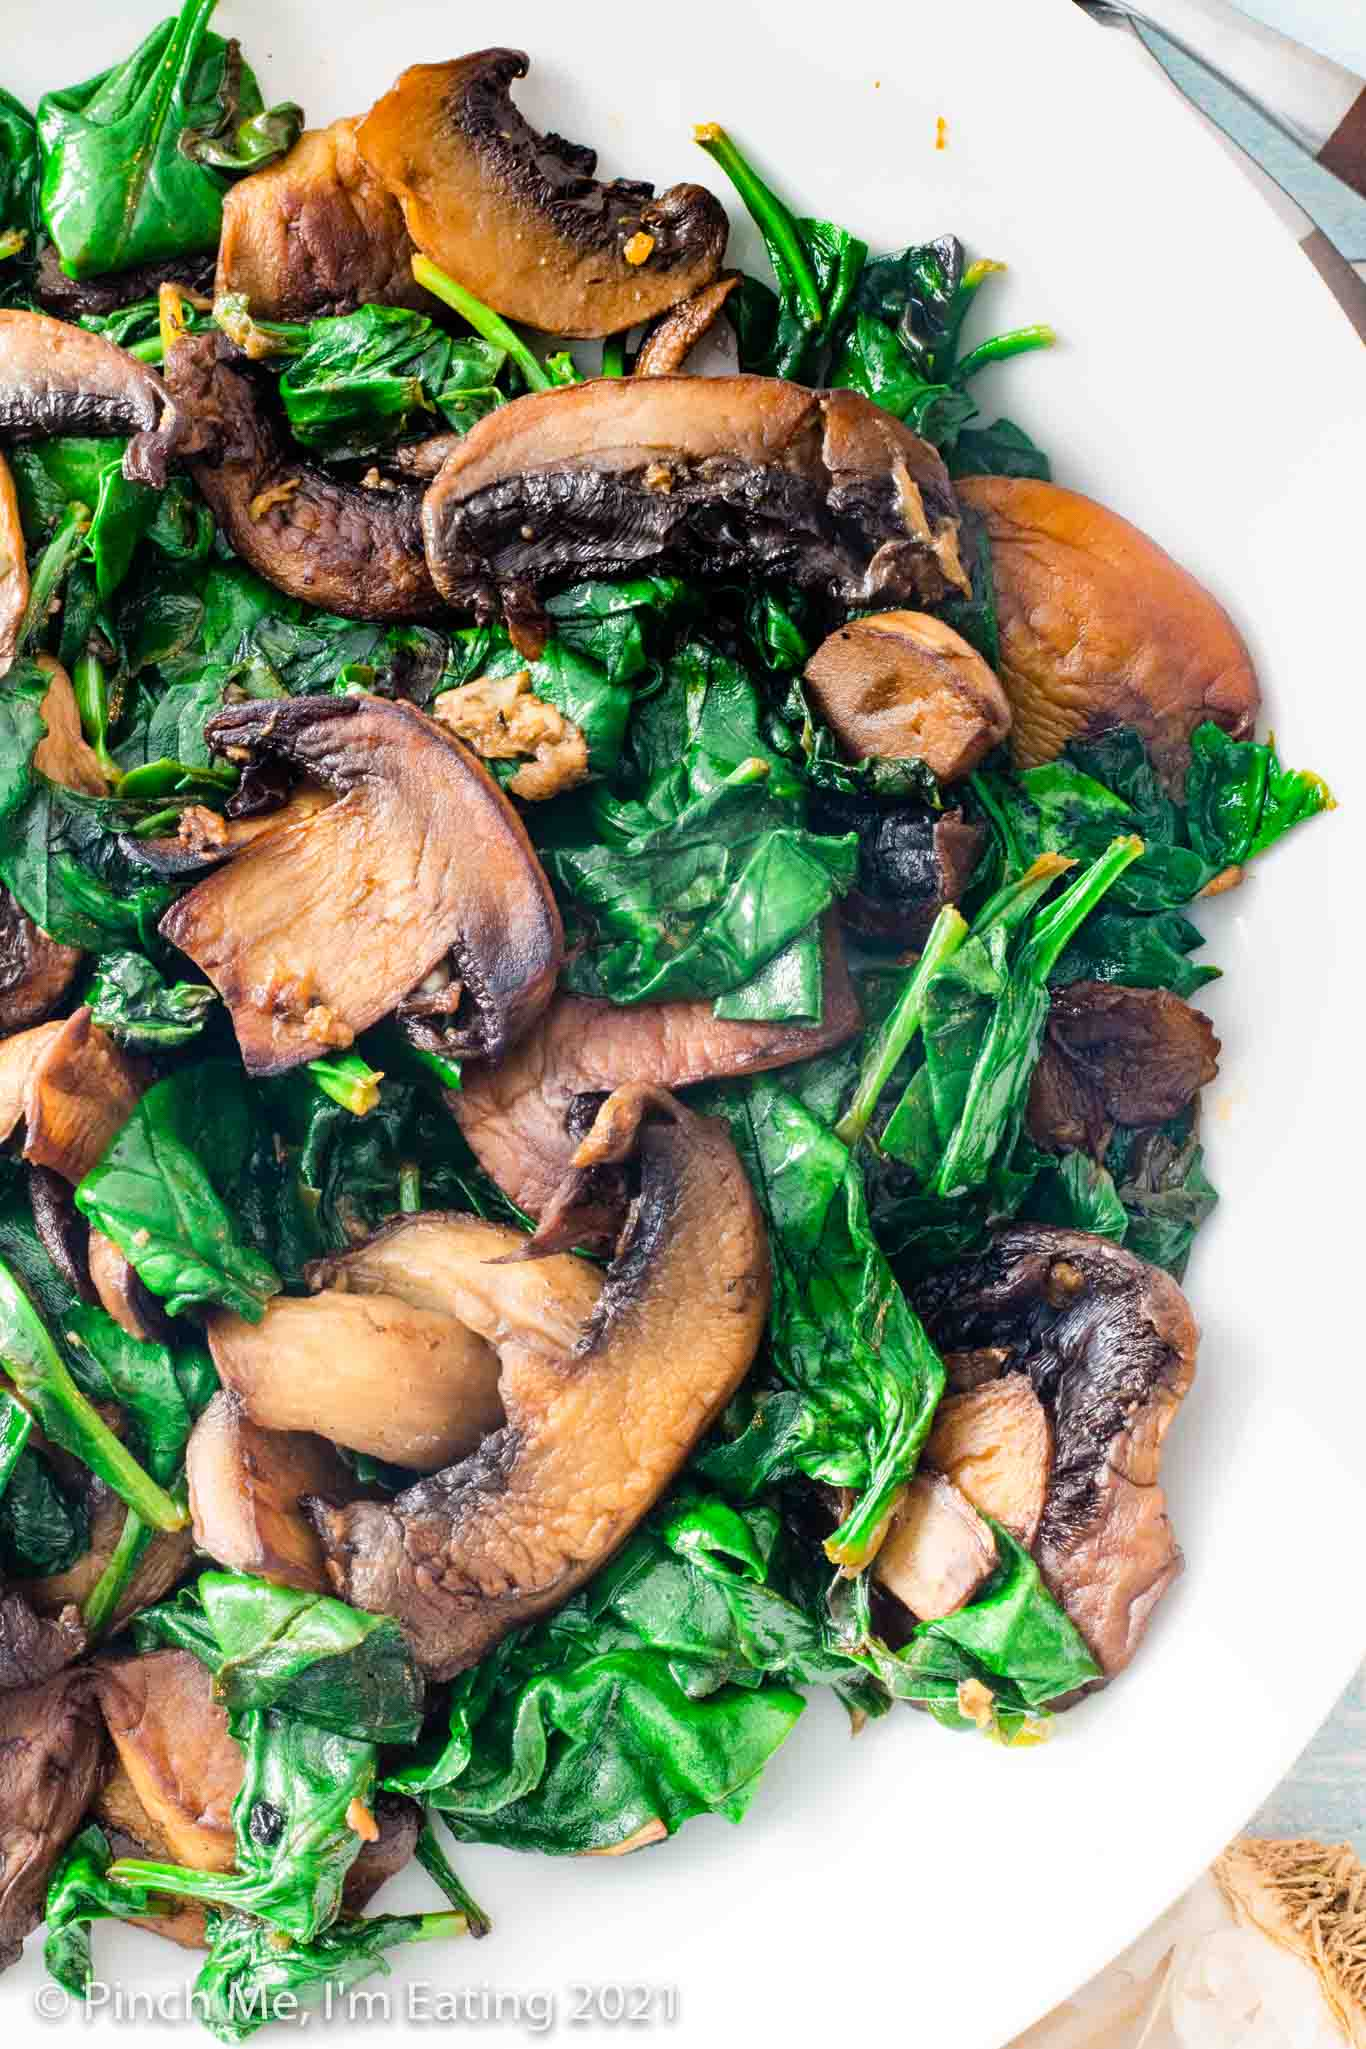 Sautéed Spinach and Mushrooms with Garlic